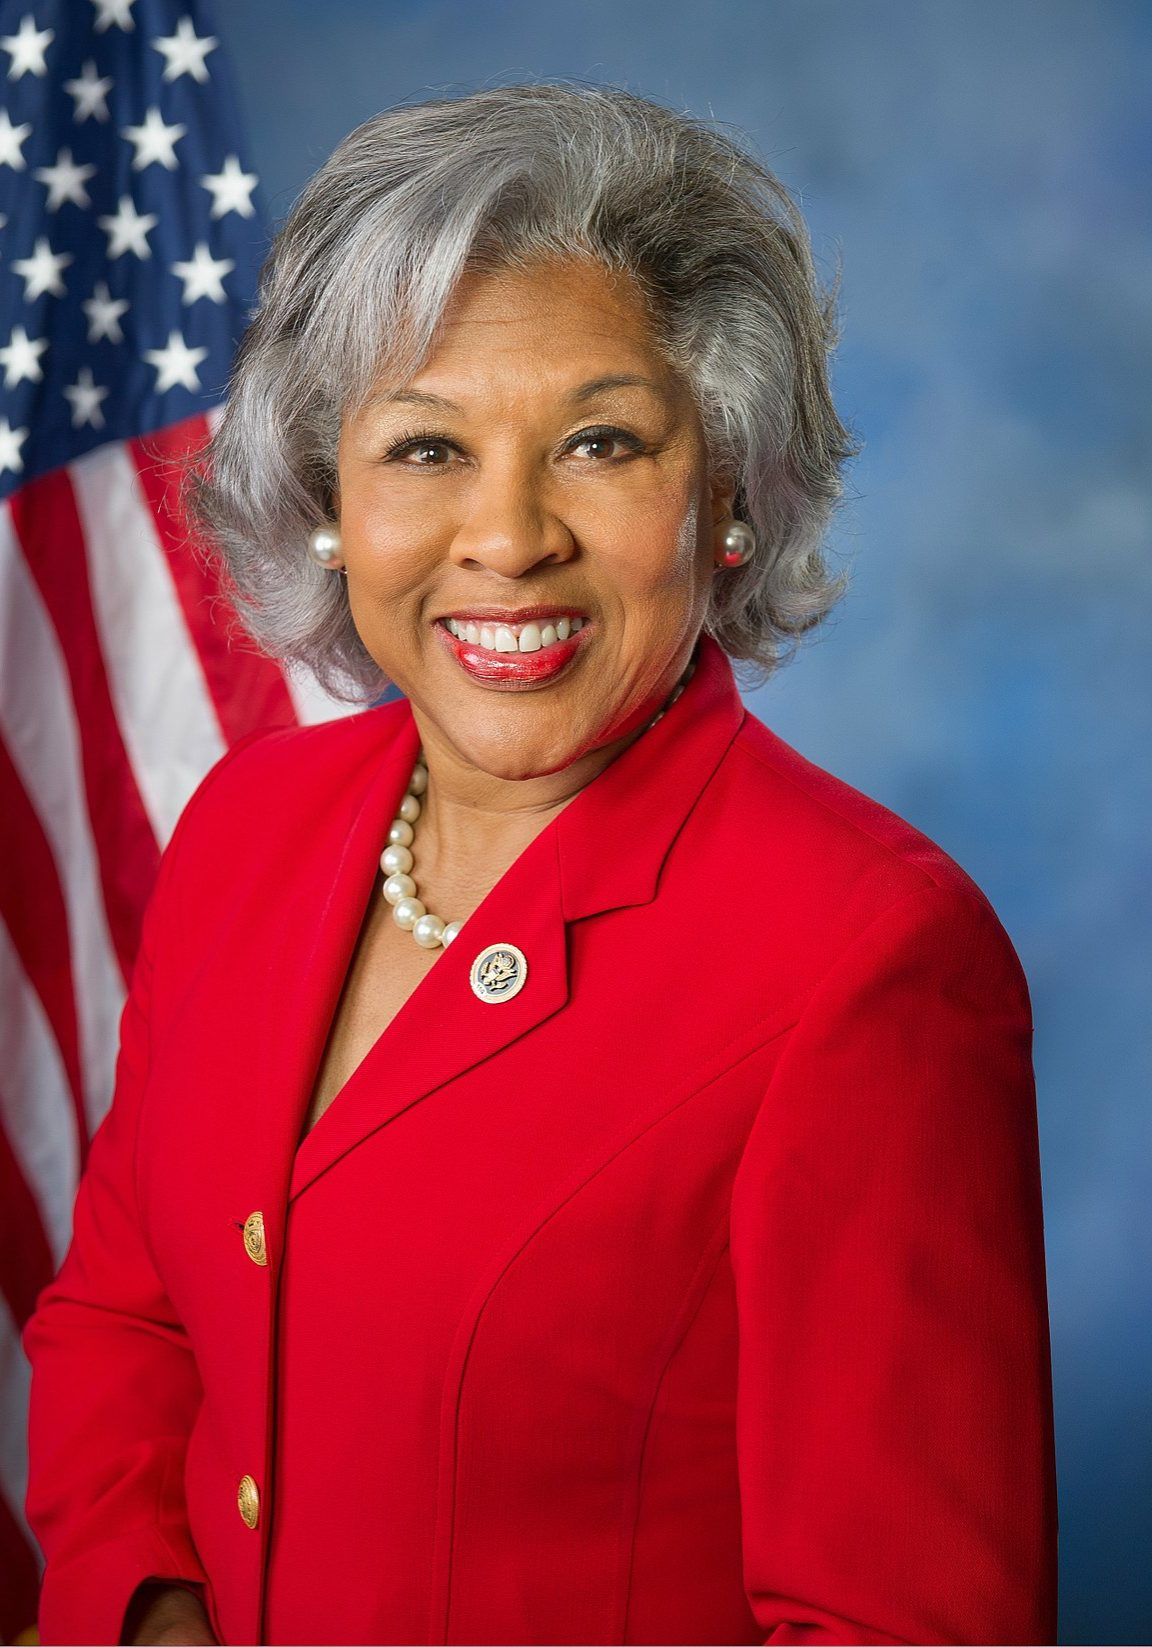 Joyce Beatty, Willoughby Avenue, The Five Fifths, KOLUMN Magazine, KOLUMN, African American Politics, Blacks in Politics, Black Vote, Vote Black